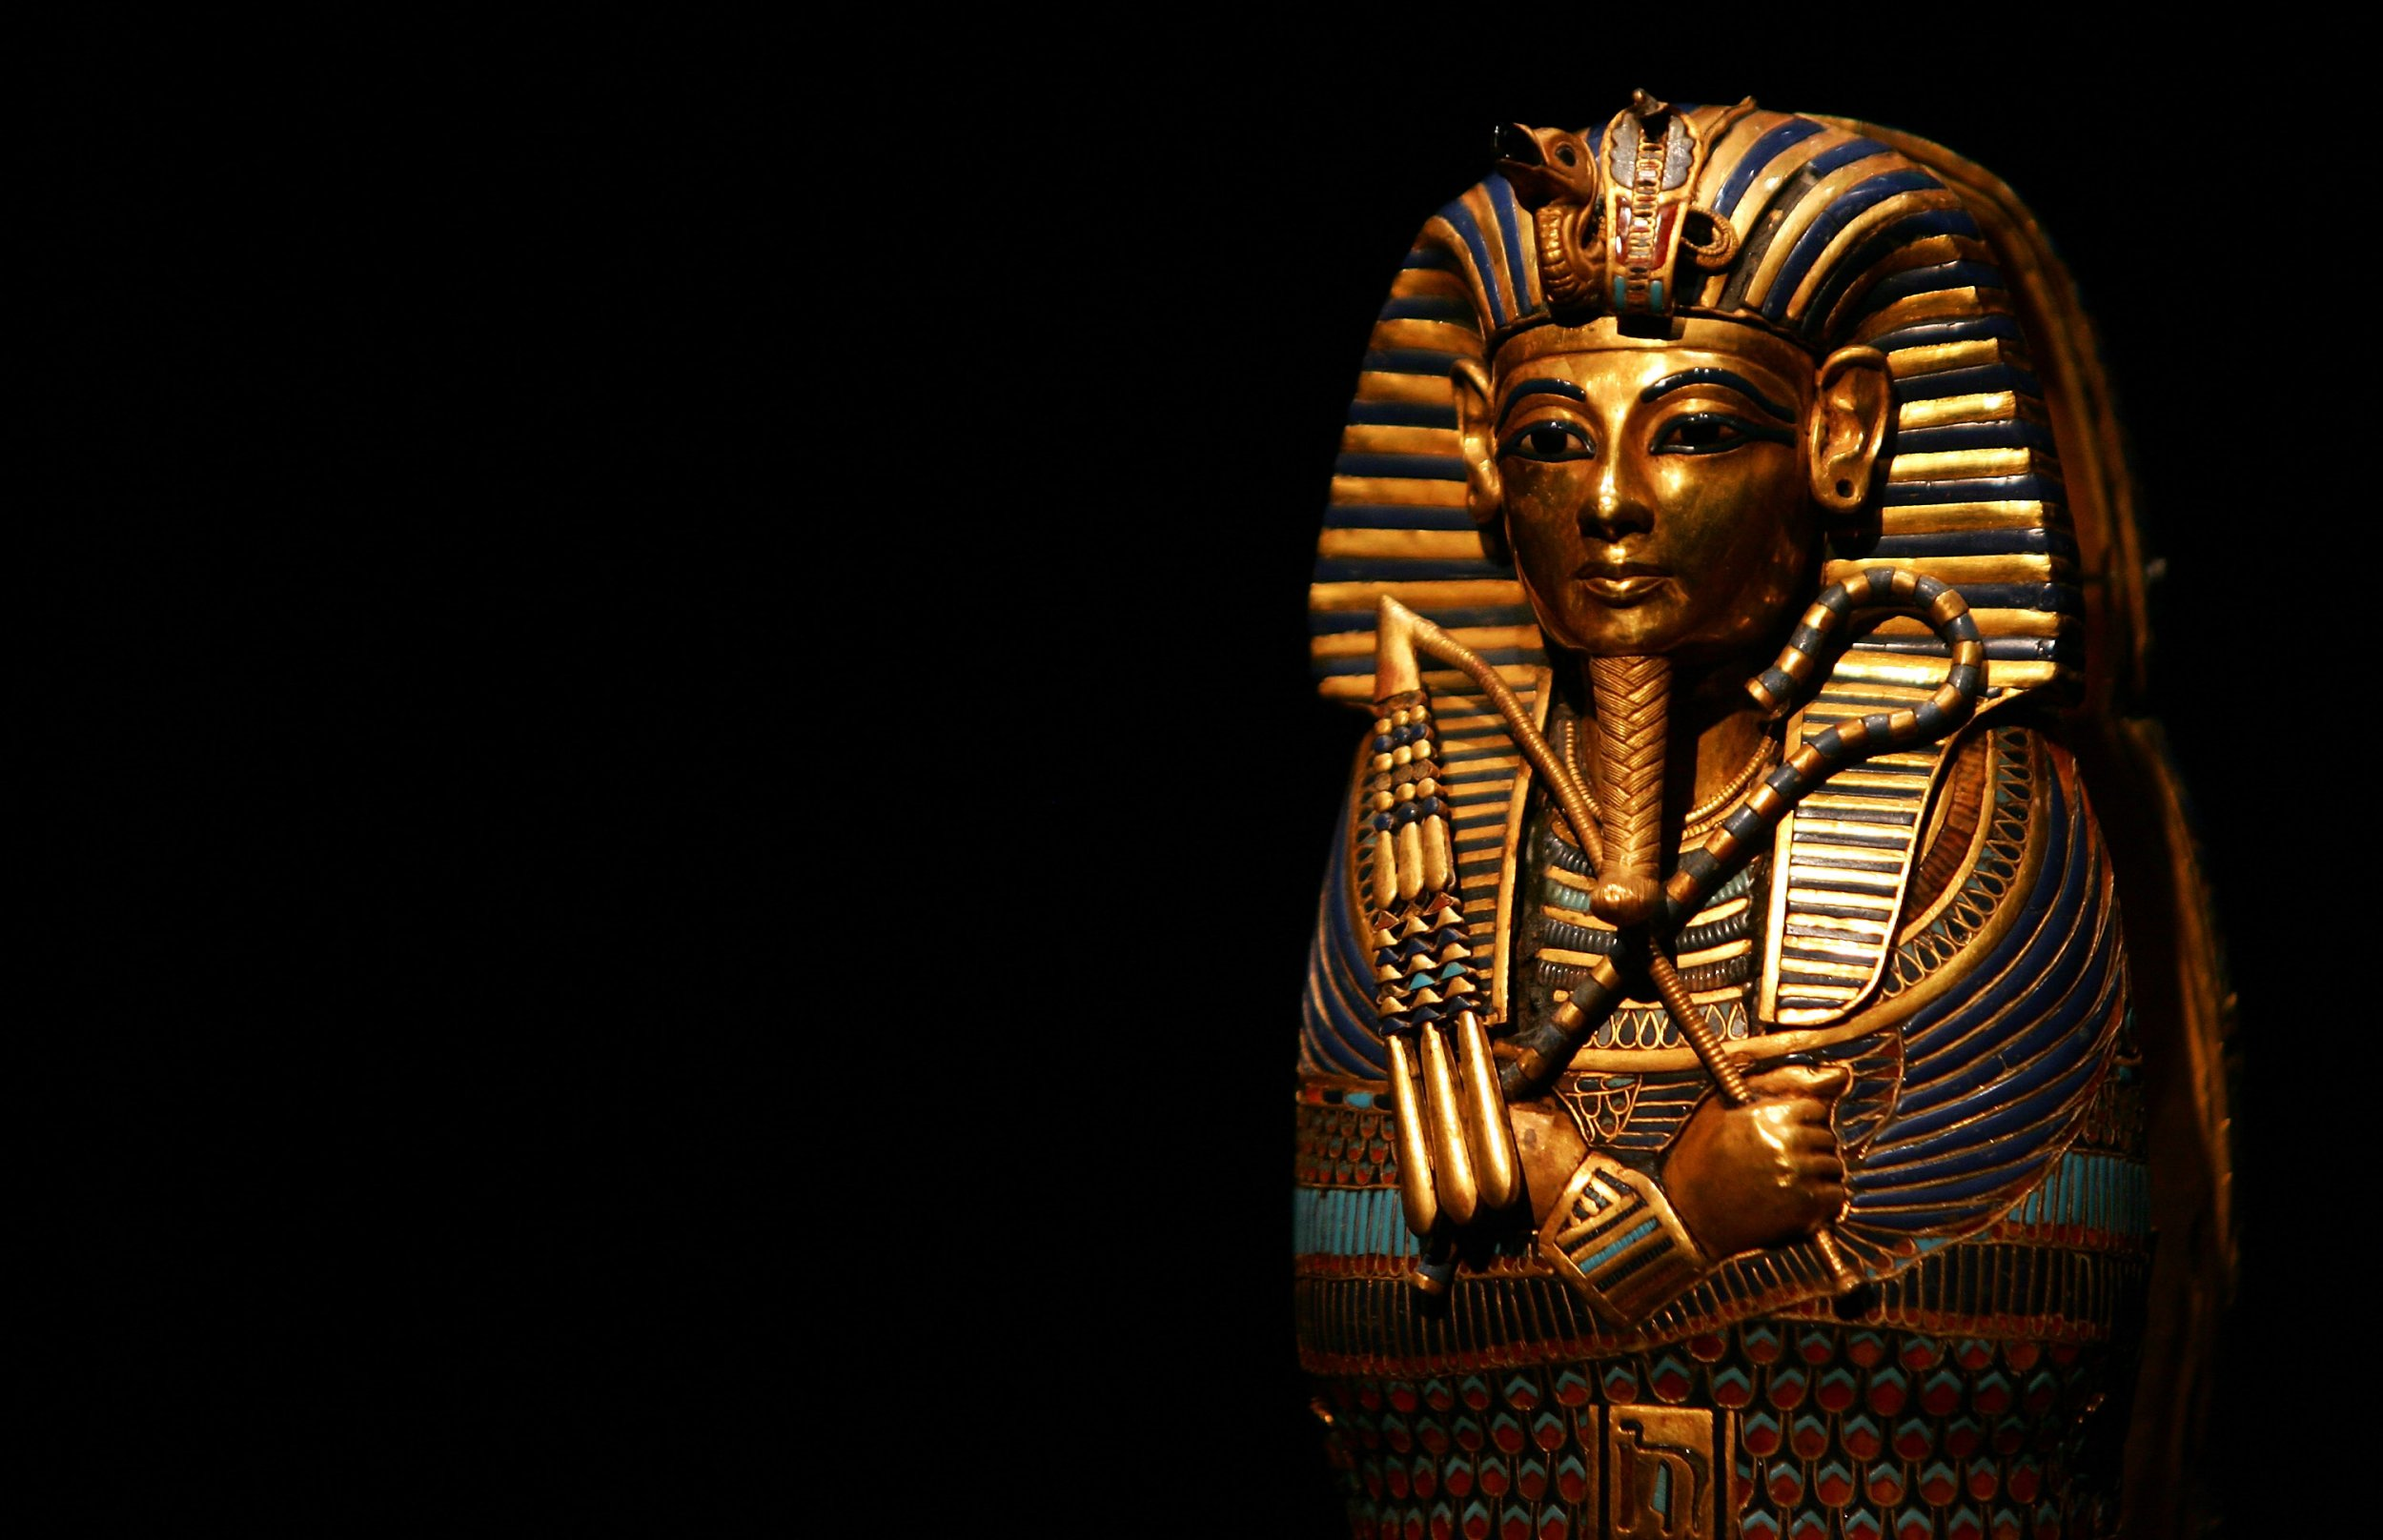 Ancient Egyptian Artifacts From King Tut's Tomb Shown for First Time After Being Locked Away for 95 Years